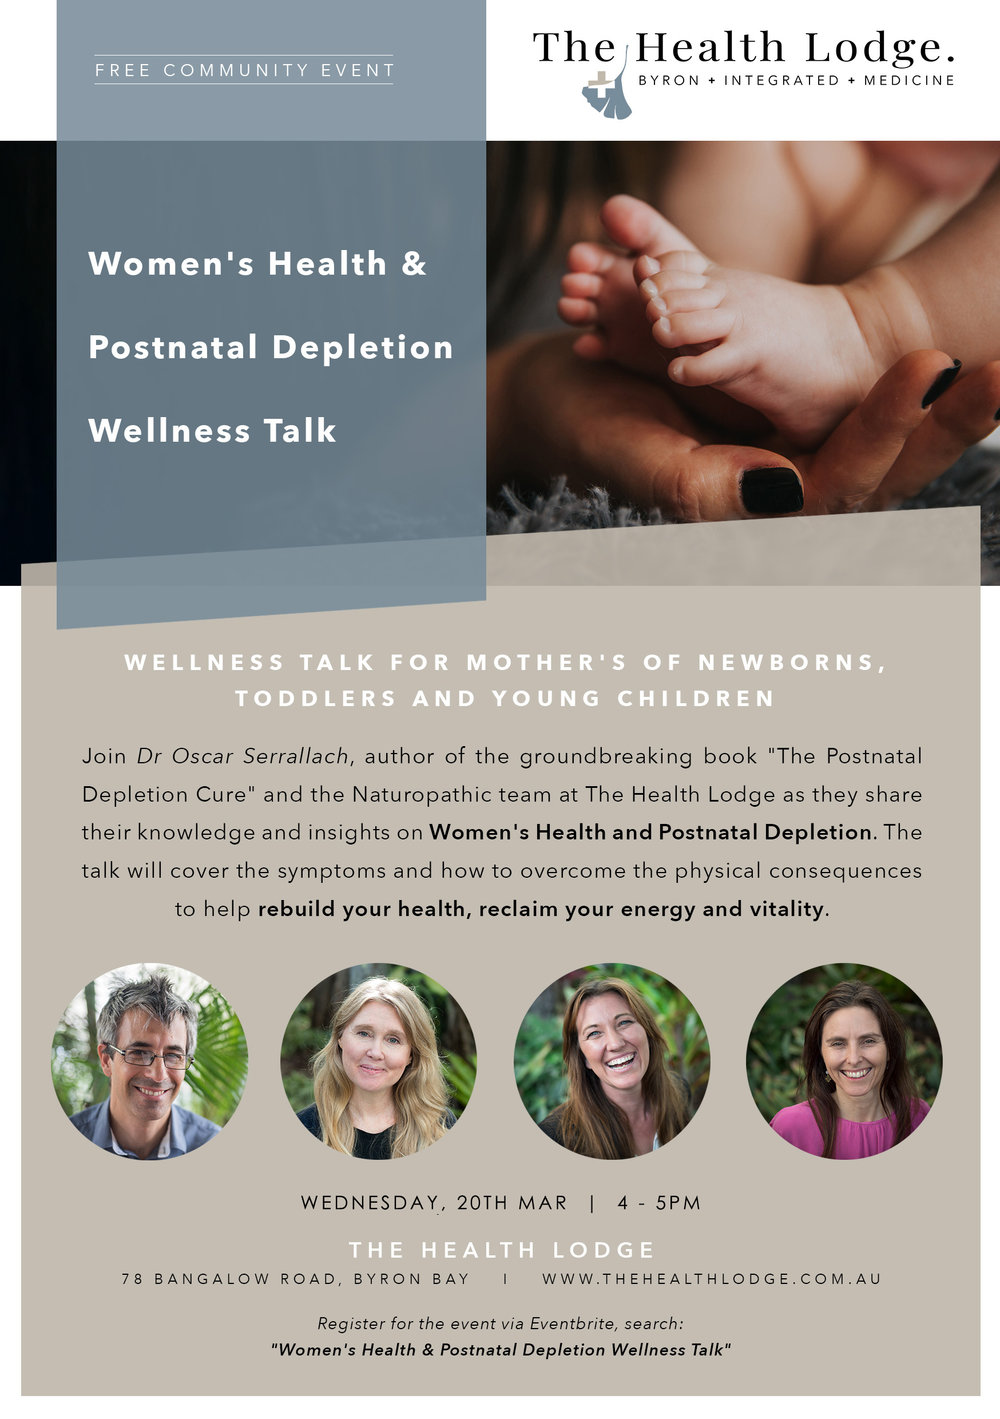 Motherhood_WellnessTalk_WebVersion_20th March.jpg